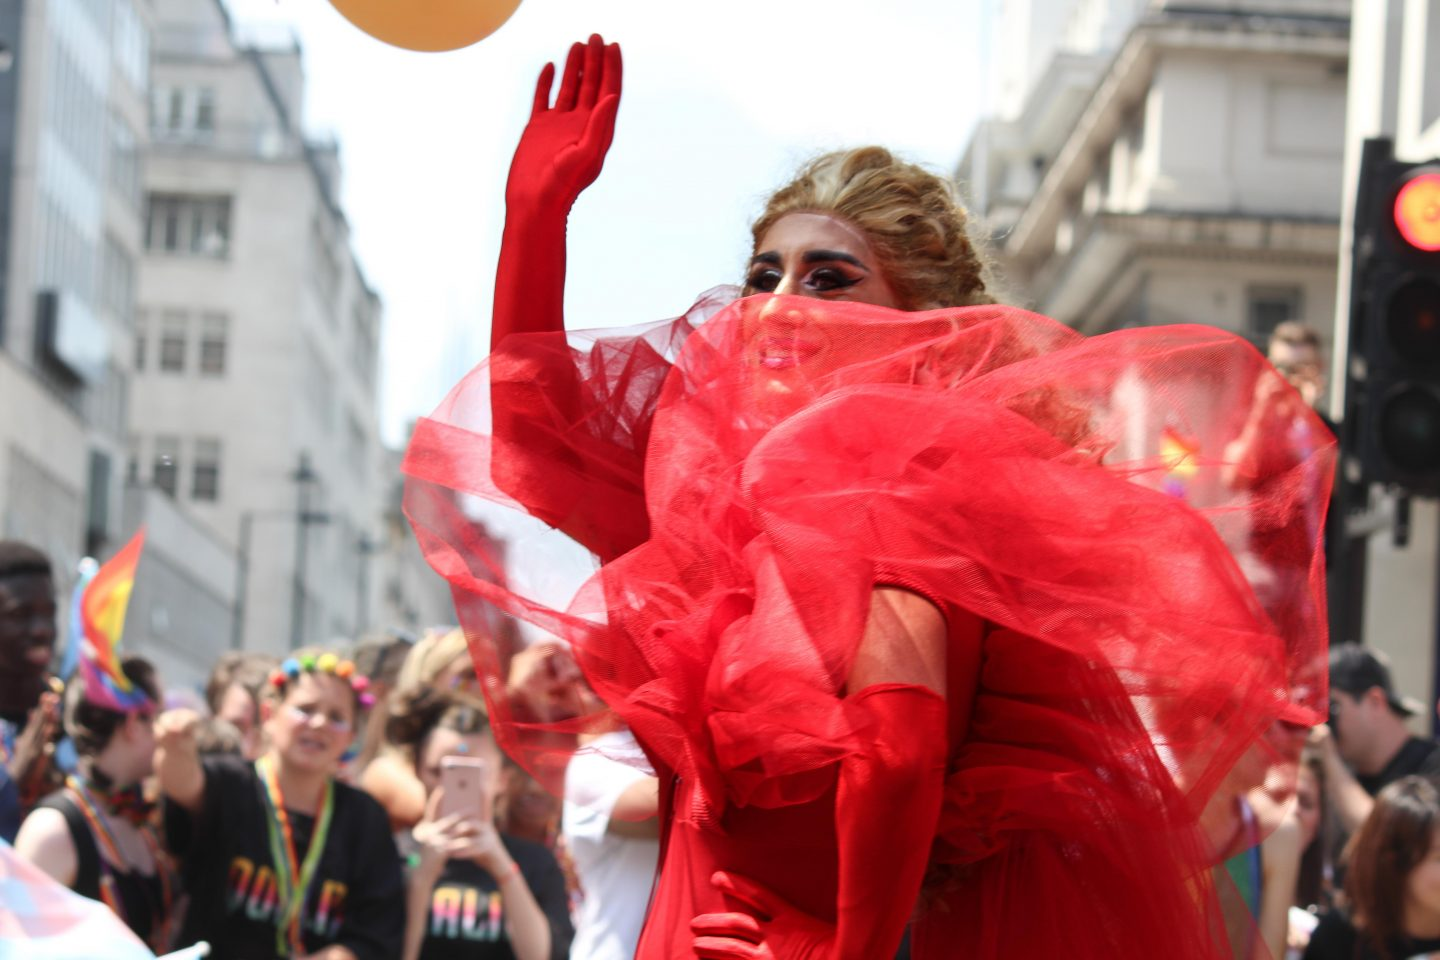 20 pictures from London Pride Parade to inspire you